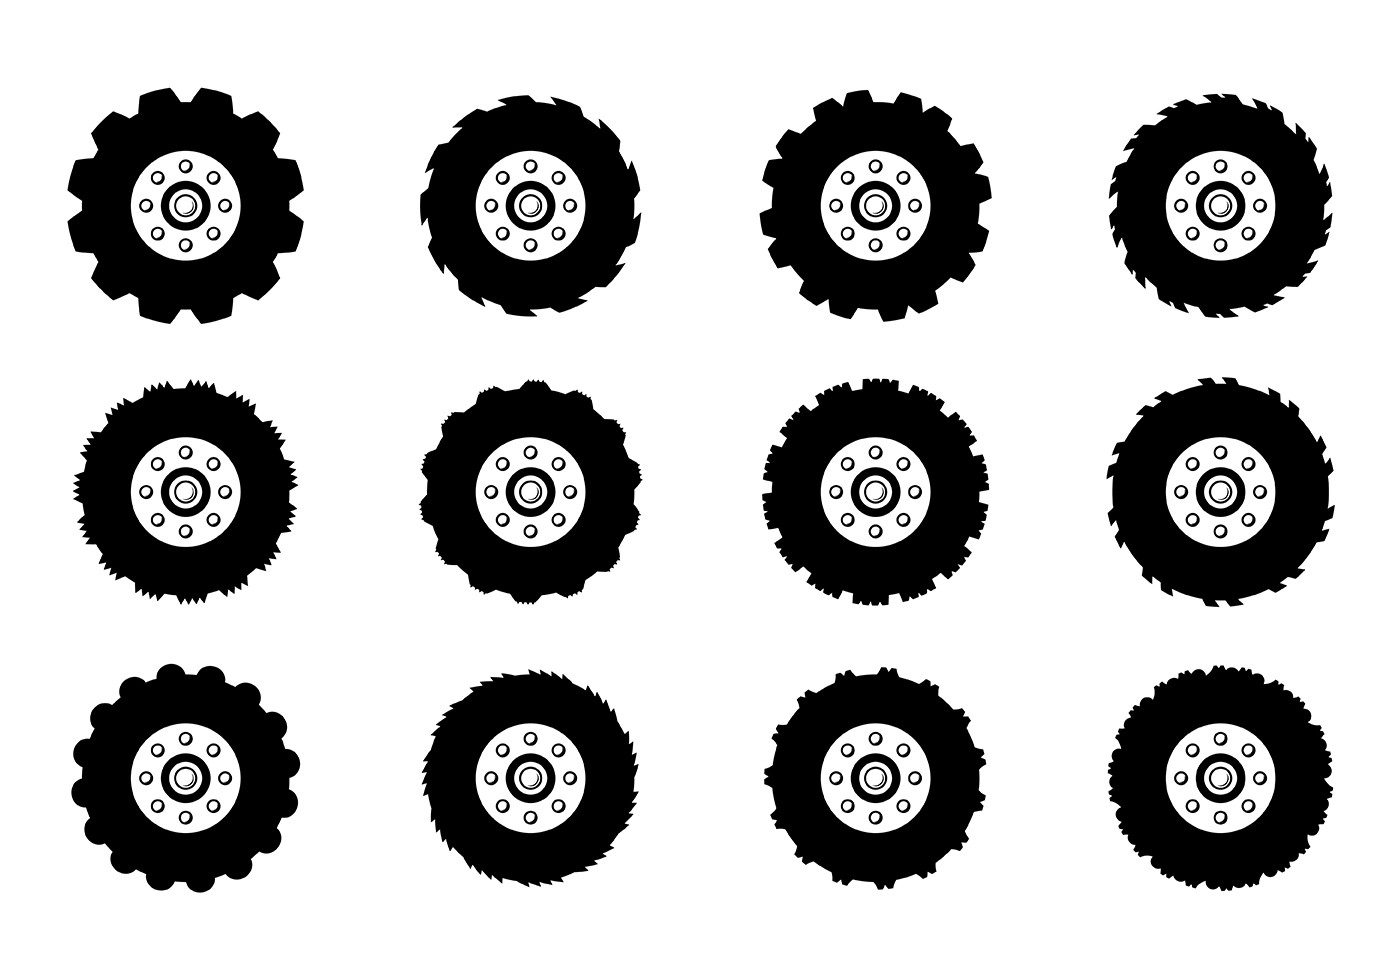 114927 Tractor Tire Vector likewise Kruz Cos Xs400 together with 201630804845 together with 2013 Uci Bmx Supercross World Cup in addition 2016 Yamaha Super Tenere Xt1200ze. on dirt race track design